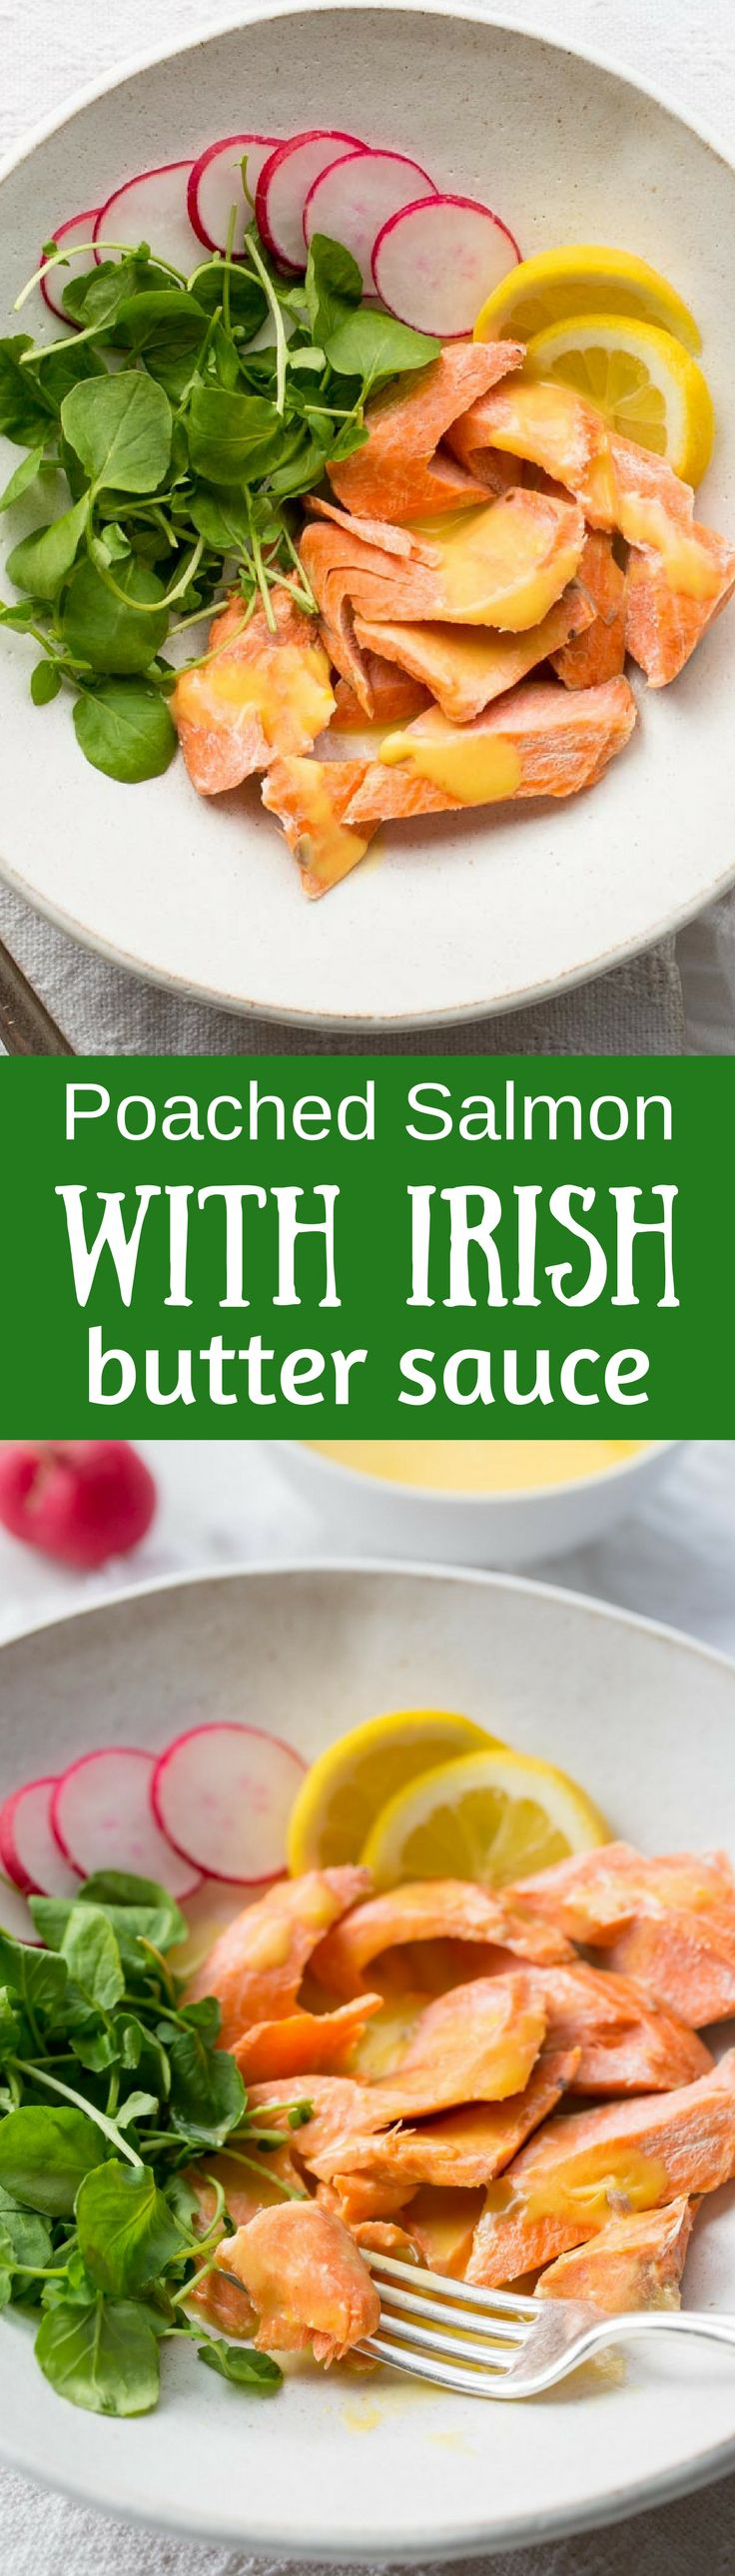 Poached Salmon with Irish Butter Sauce - Wild caught salmon is gently poached in salted water then topped with a lemony butter sauce. The salmon and sauce can be ready in about 20 minutes so that makes this a delicious, quick and easy meal for any night of the week. www.savingdessert...